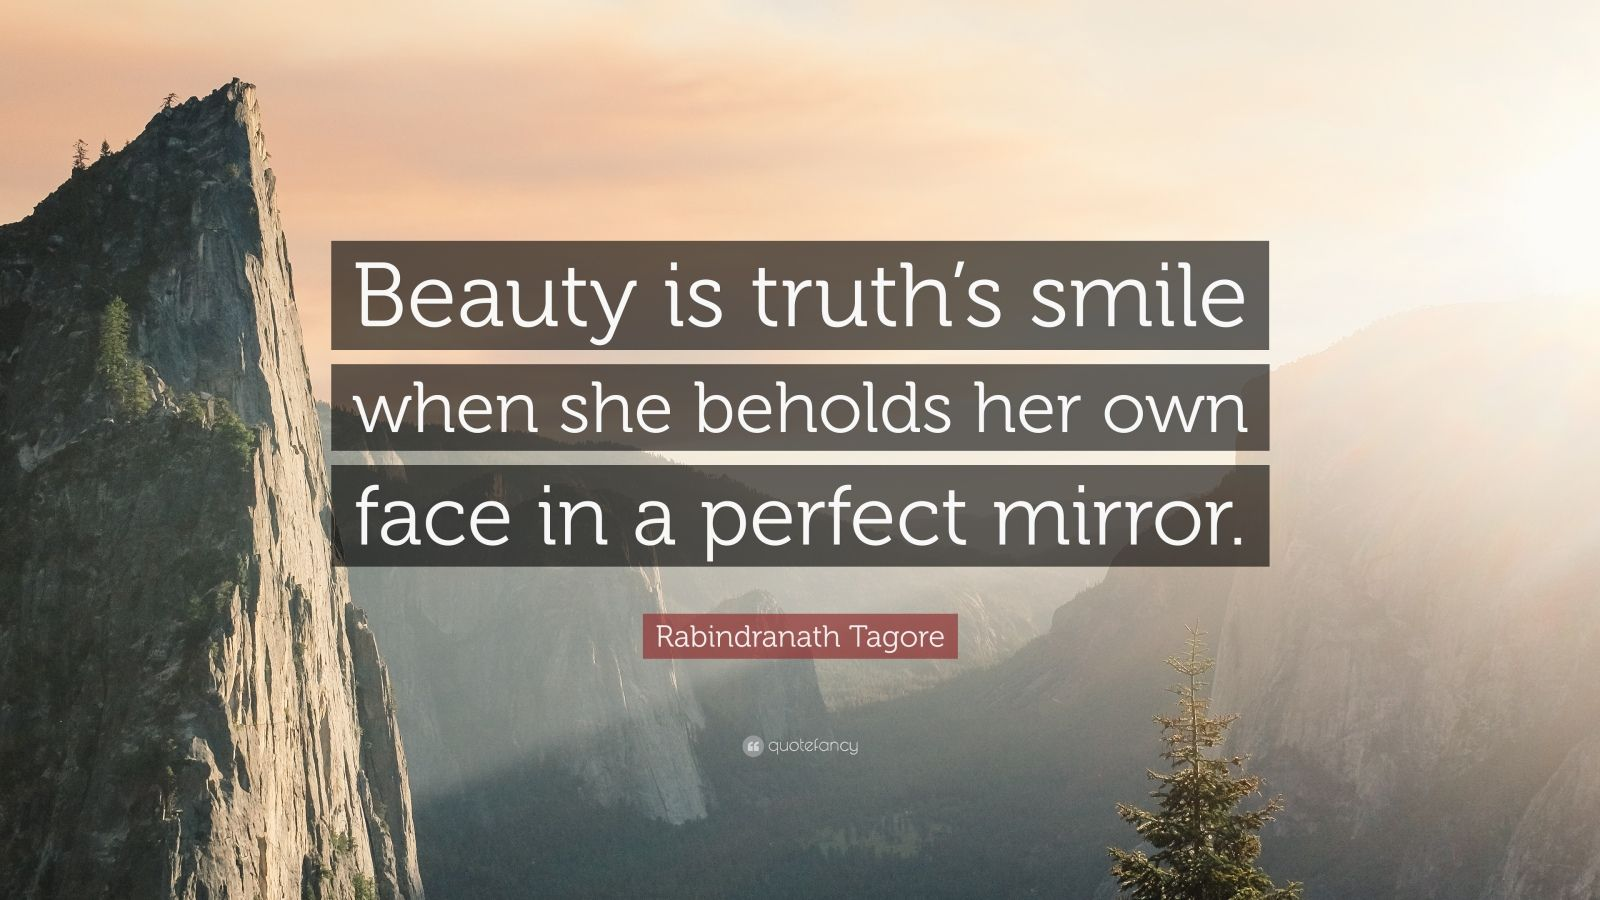 """Rabindranath Tagore Quote: """"Beauty is truth's smile when she beholds her own face in a perfect mirror."""""""